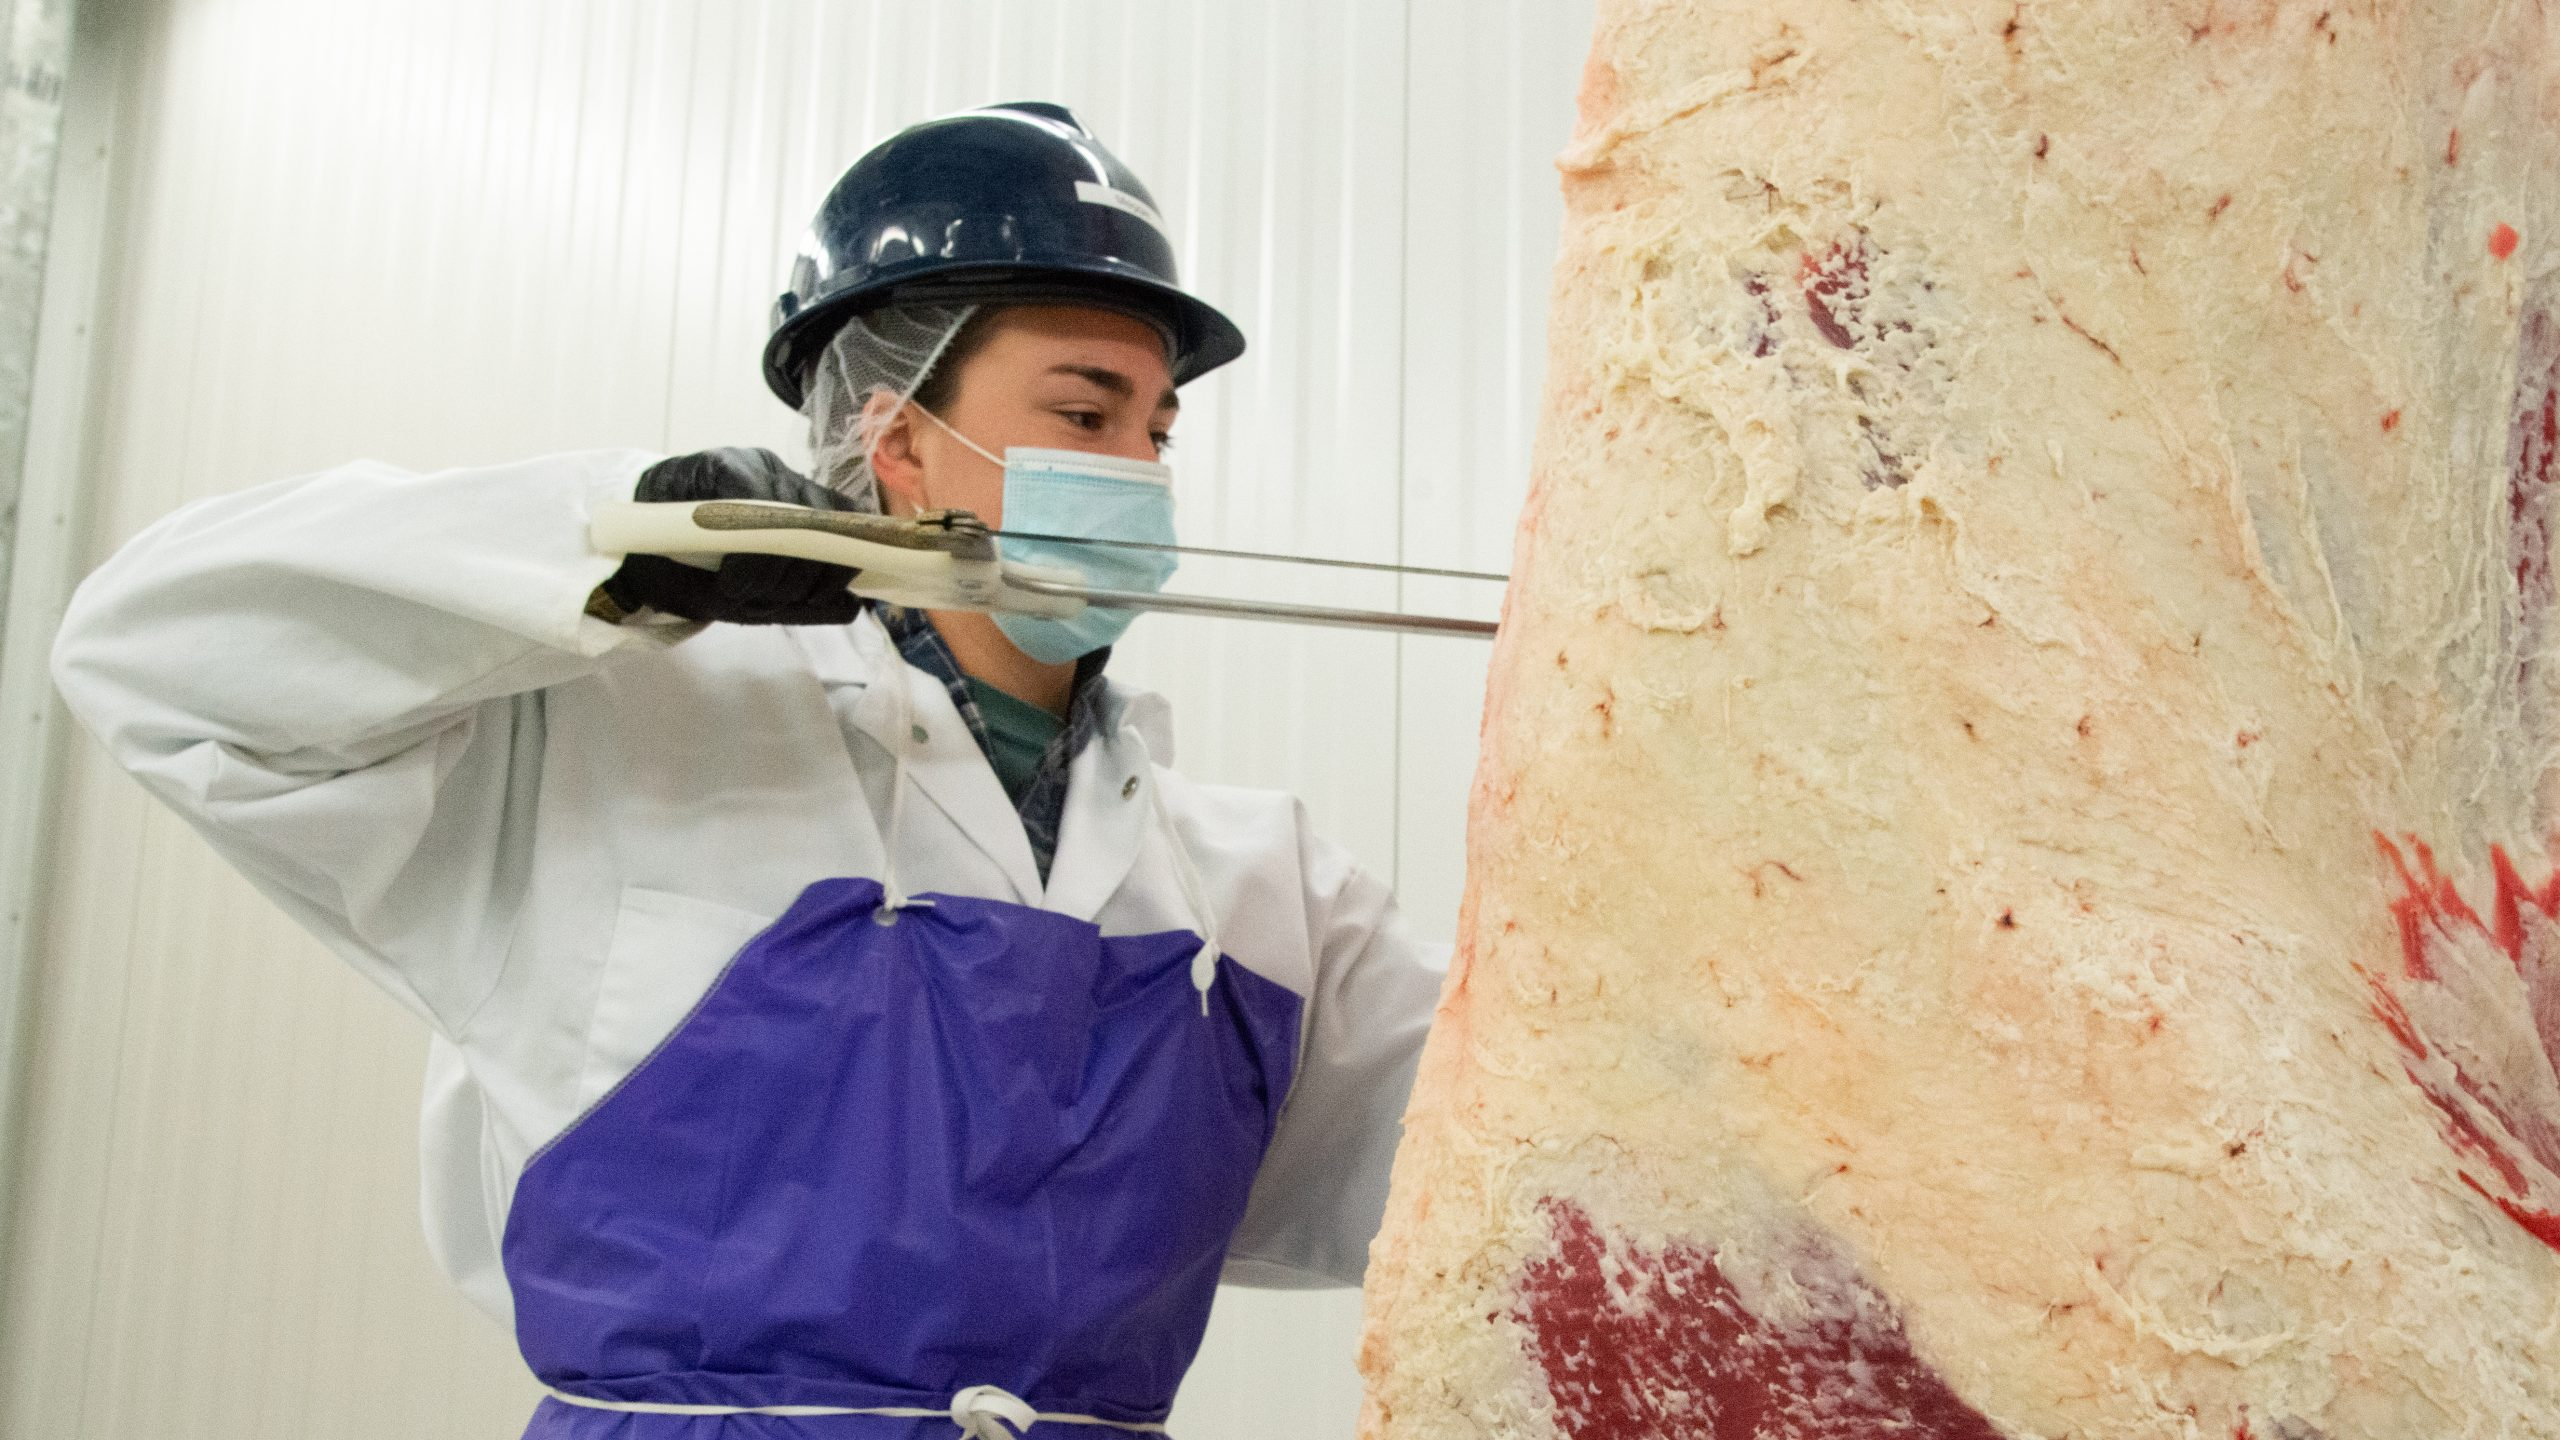 Student carves hanging beef carcass